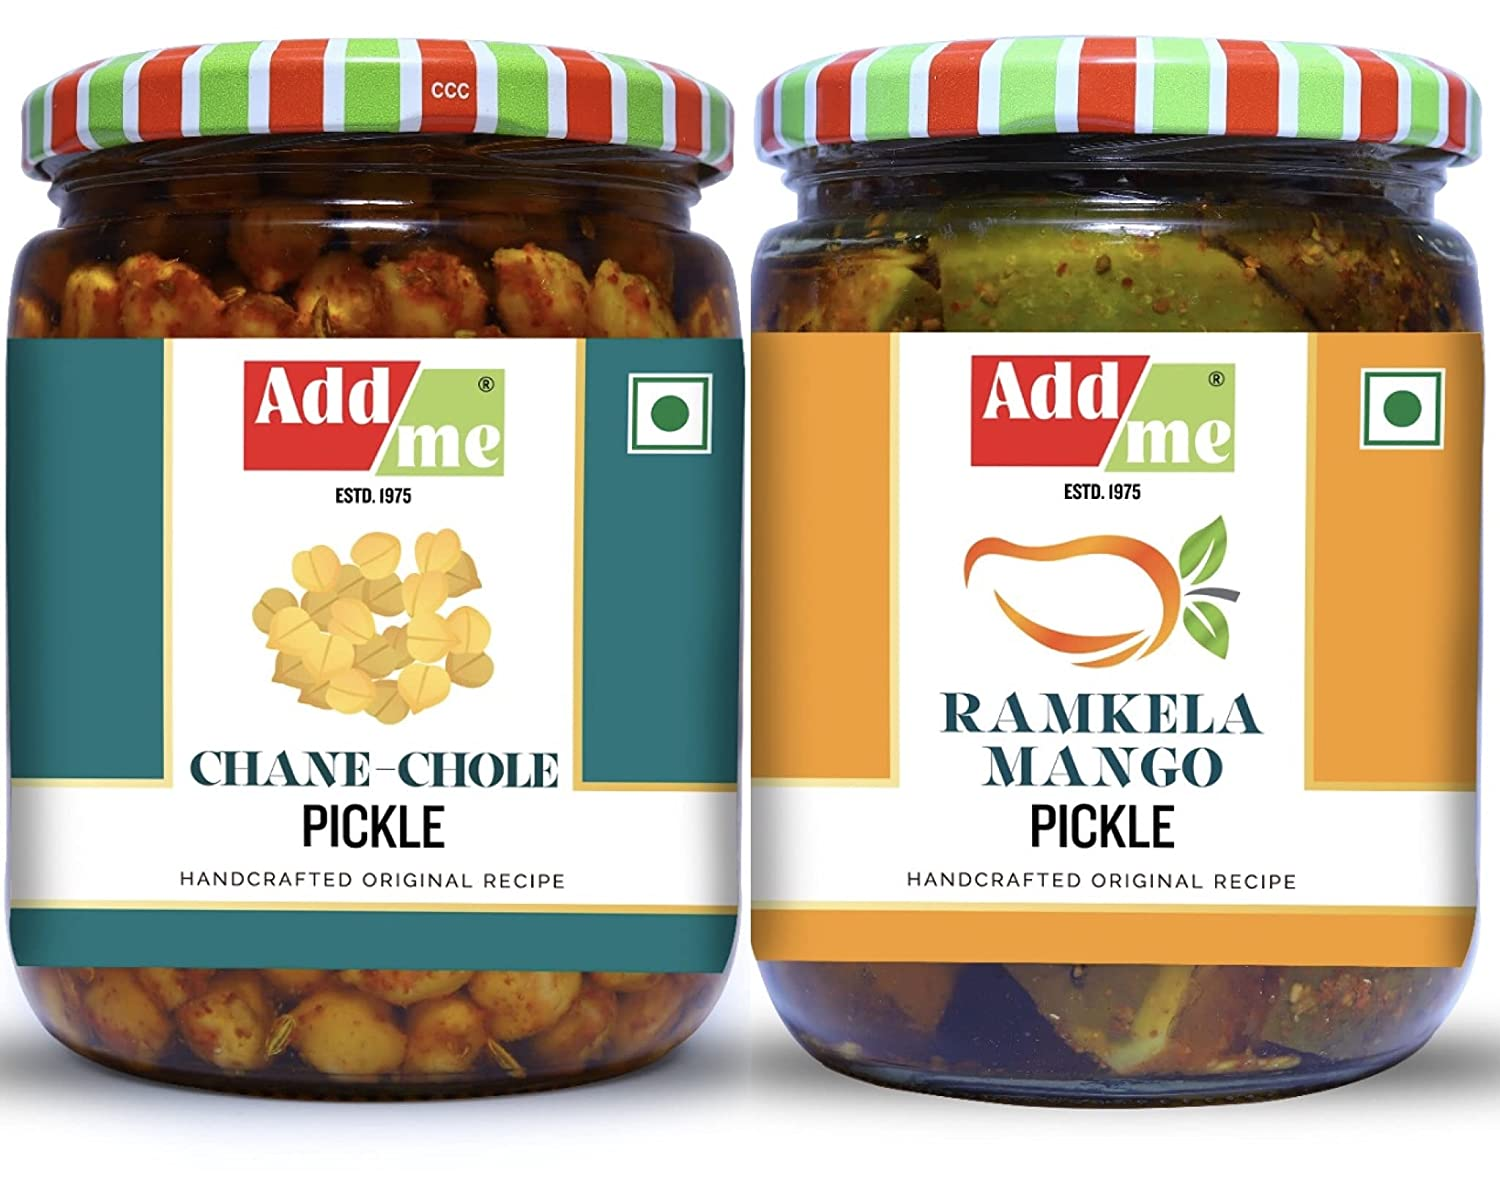 Add Me Mango Pickle And Chole Chana Pickles 500gm Mixed Combo Offer Chickpeas Pickle Less Oil Aam Ka Achar Punjabi Achar Glass Pack